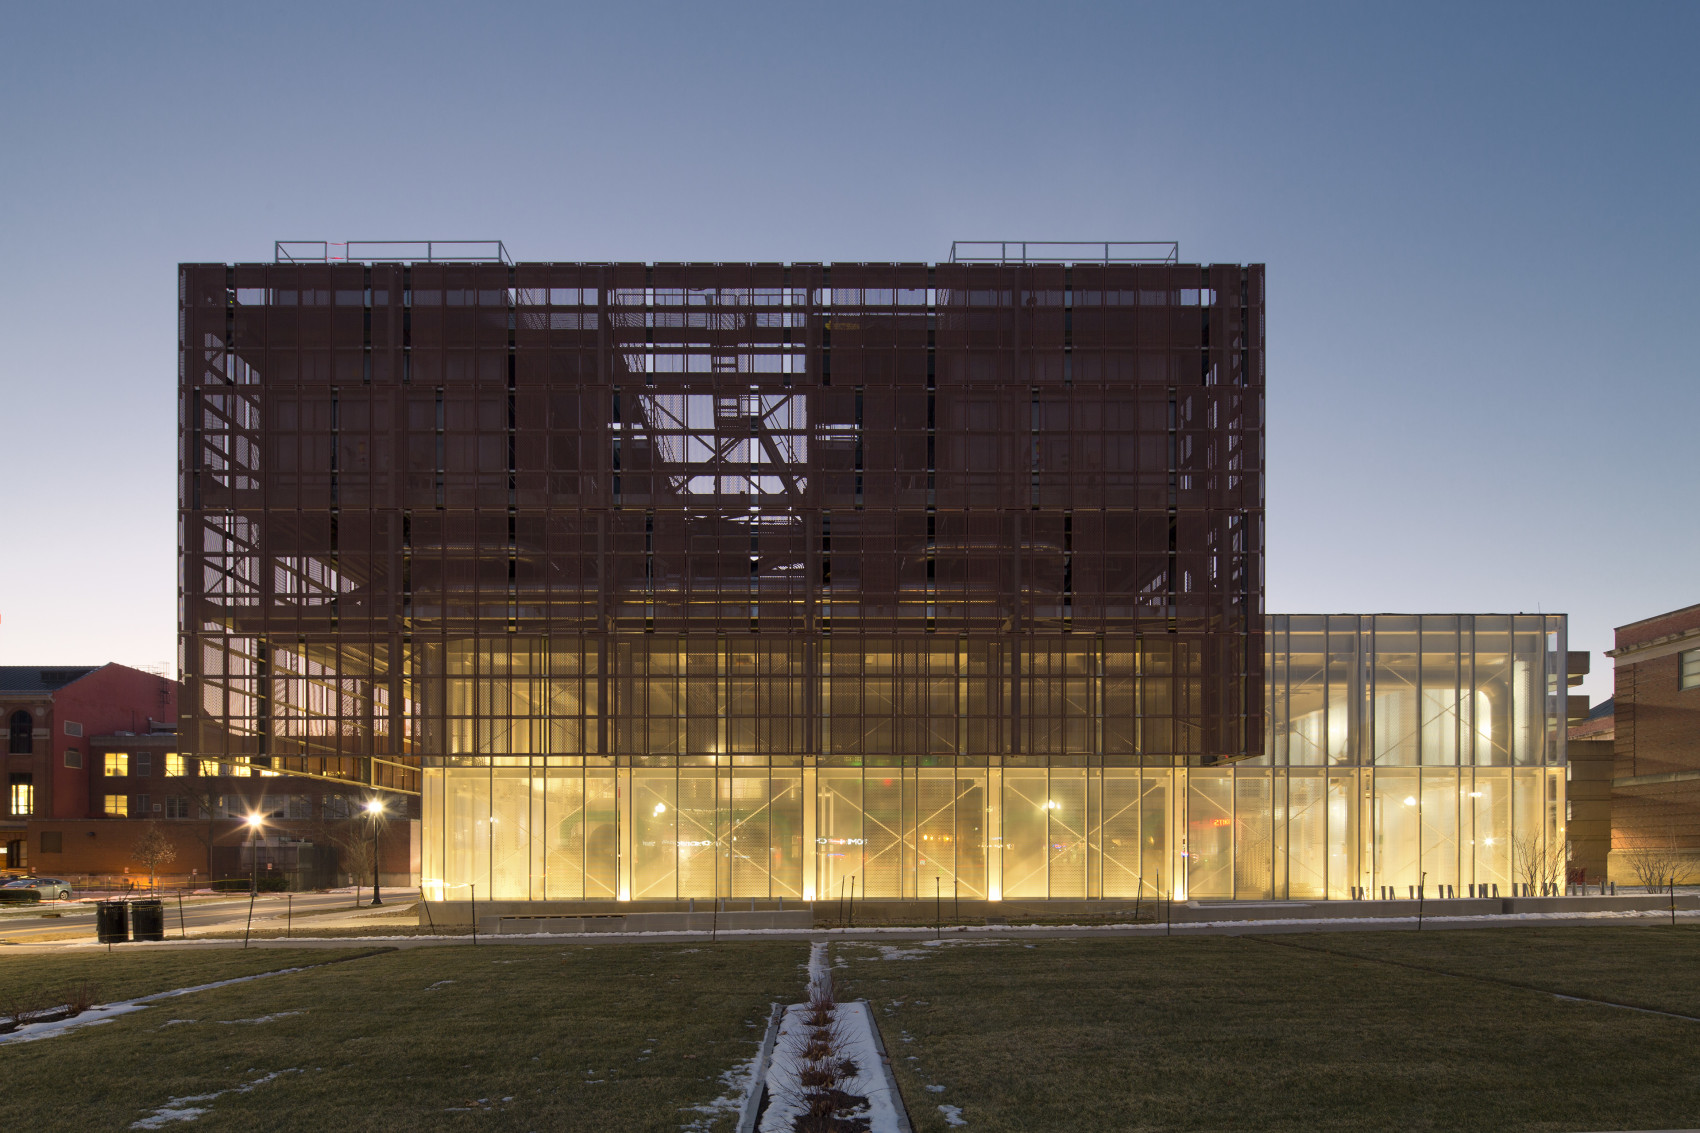 The Ohio State East Regional Chilled Water Plant - Photo